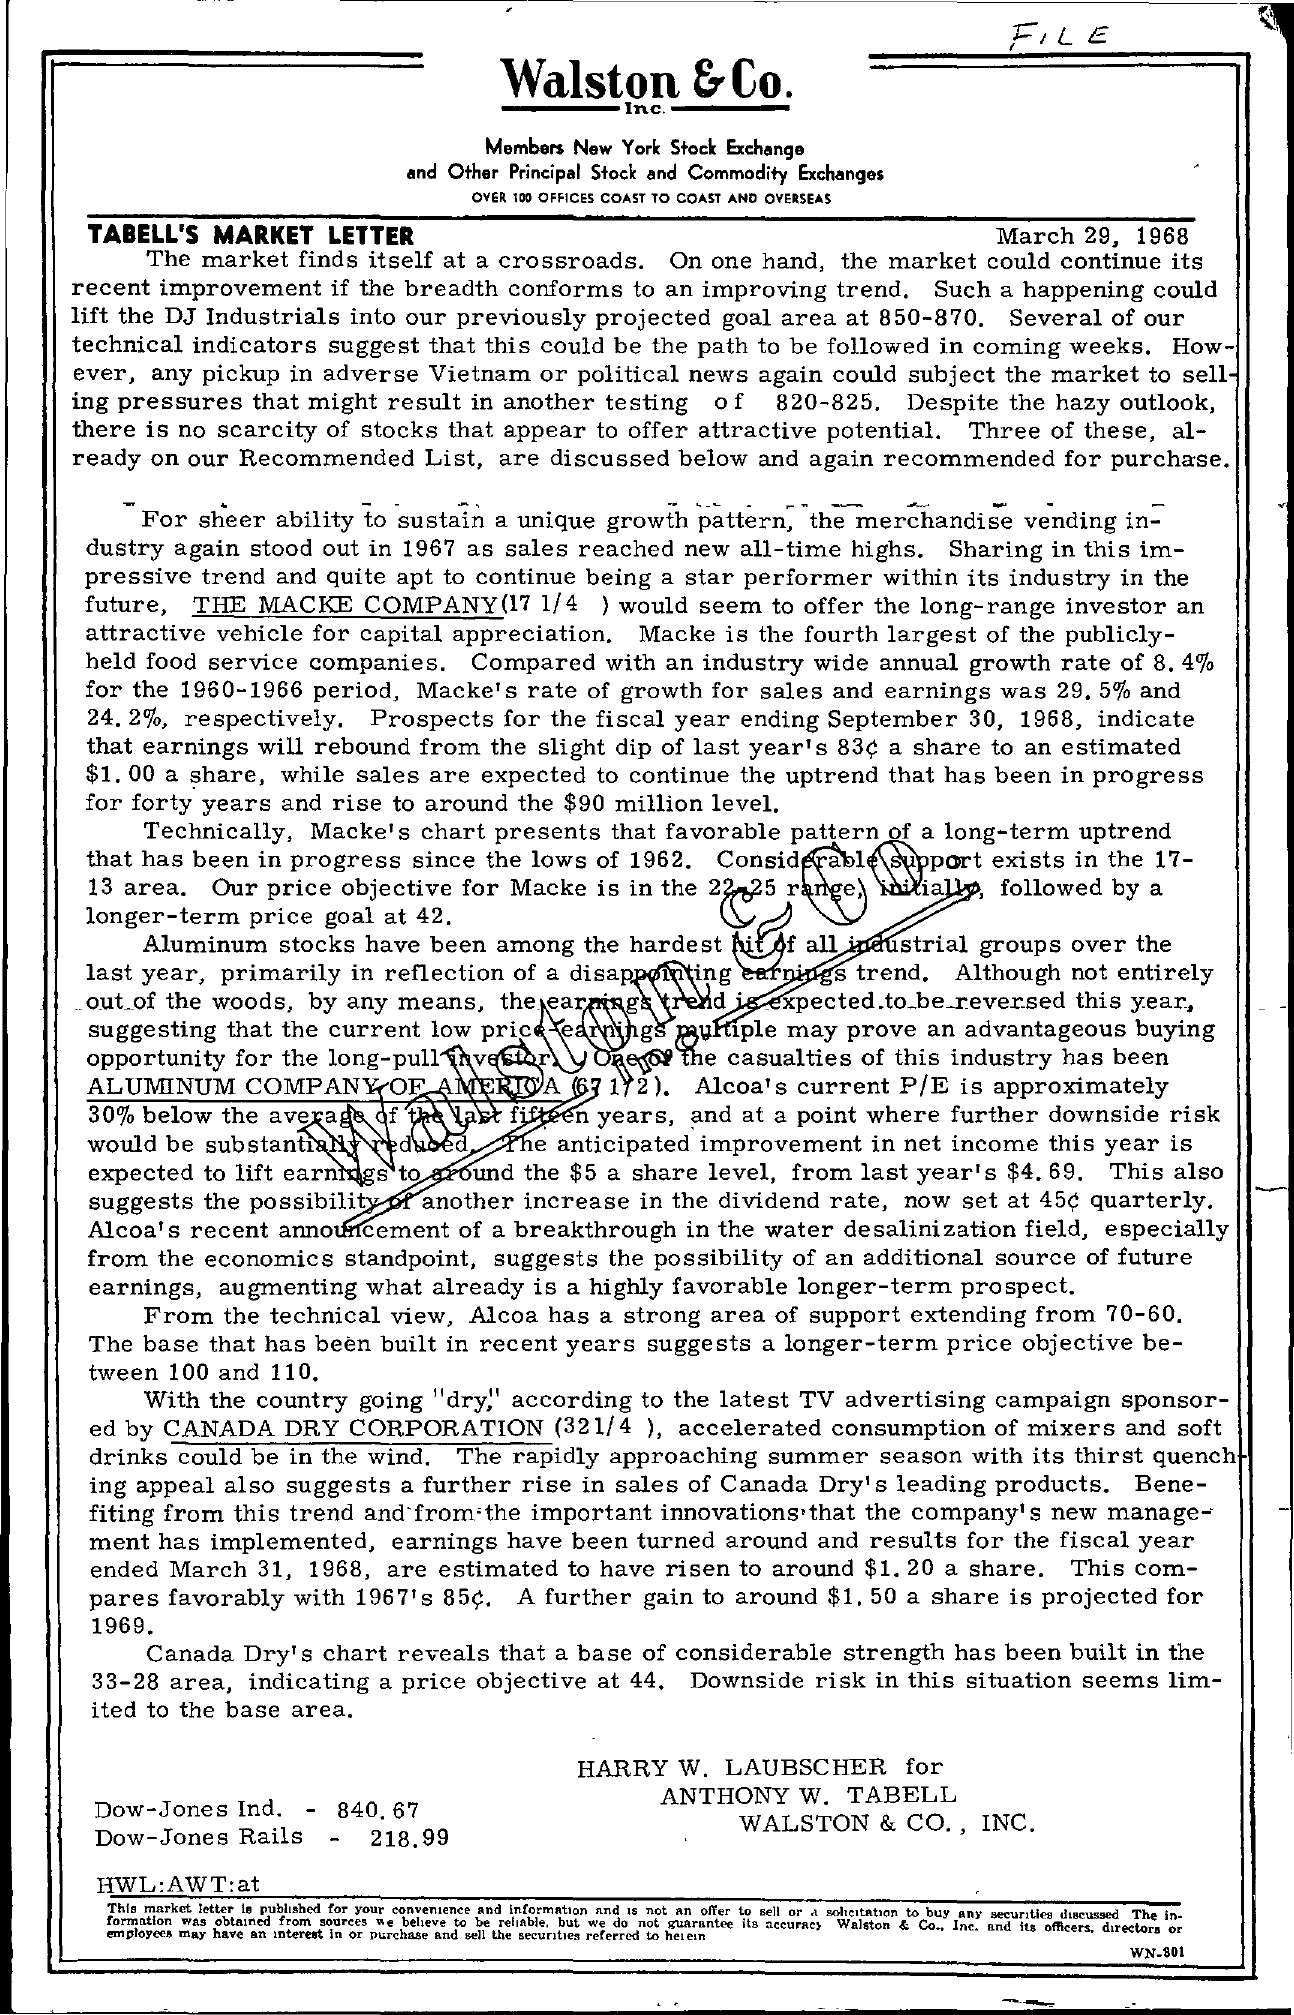 Tabell's Market Letter - March 29, 1968